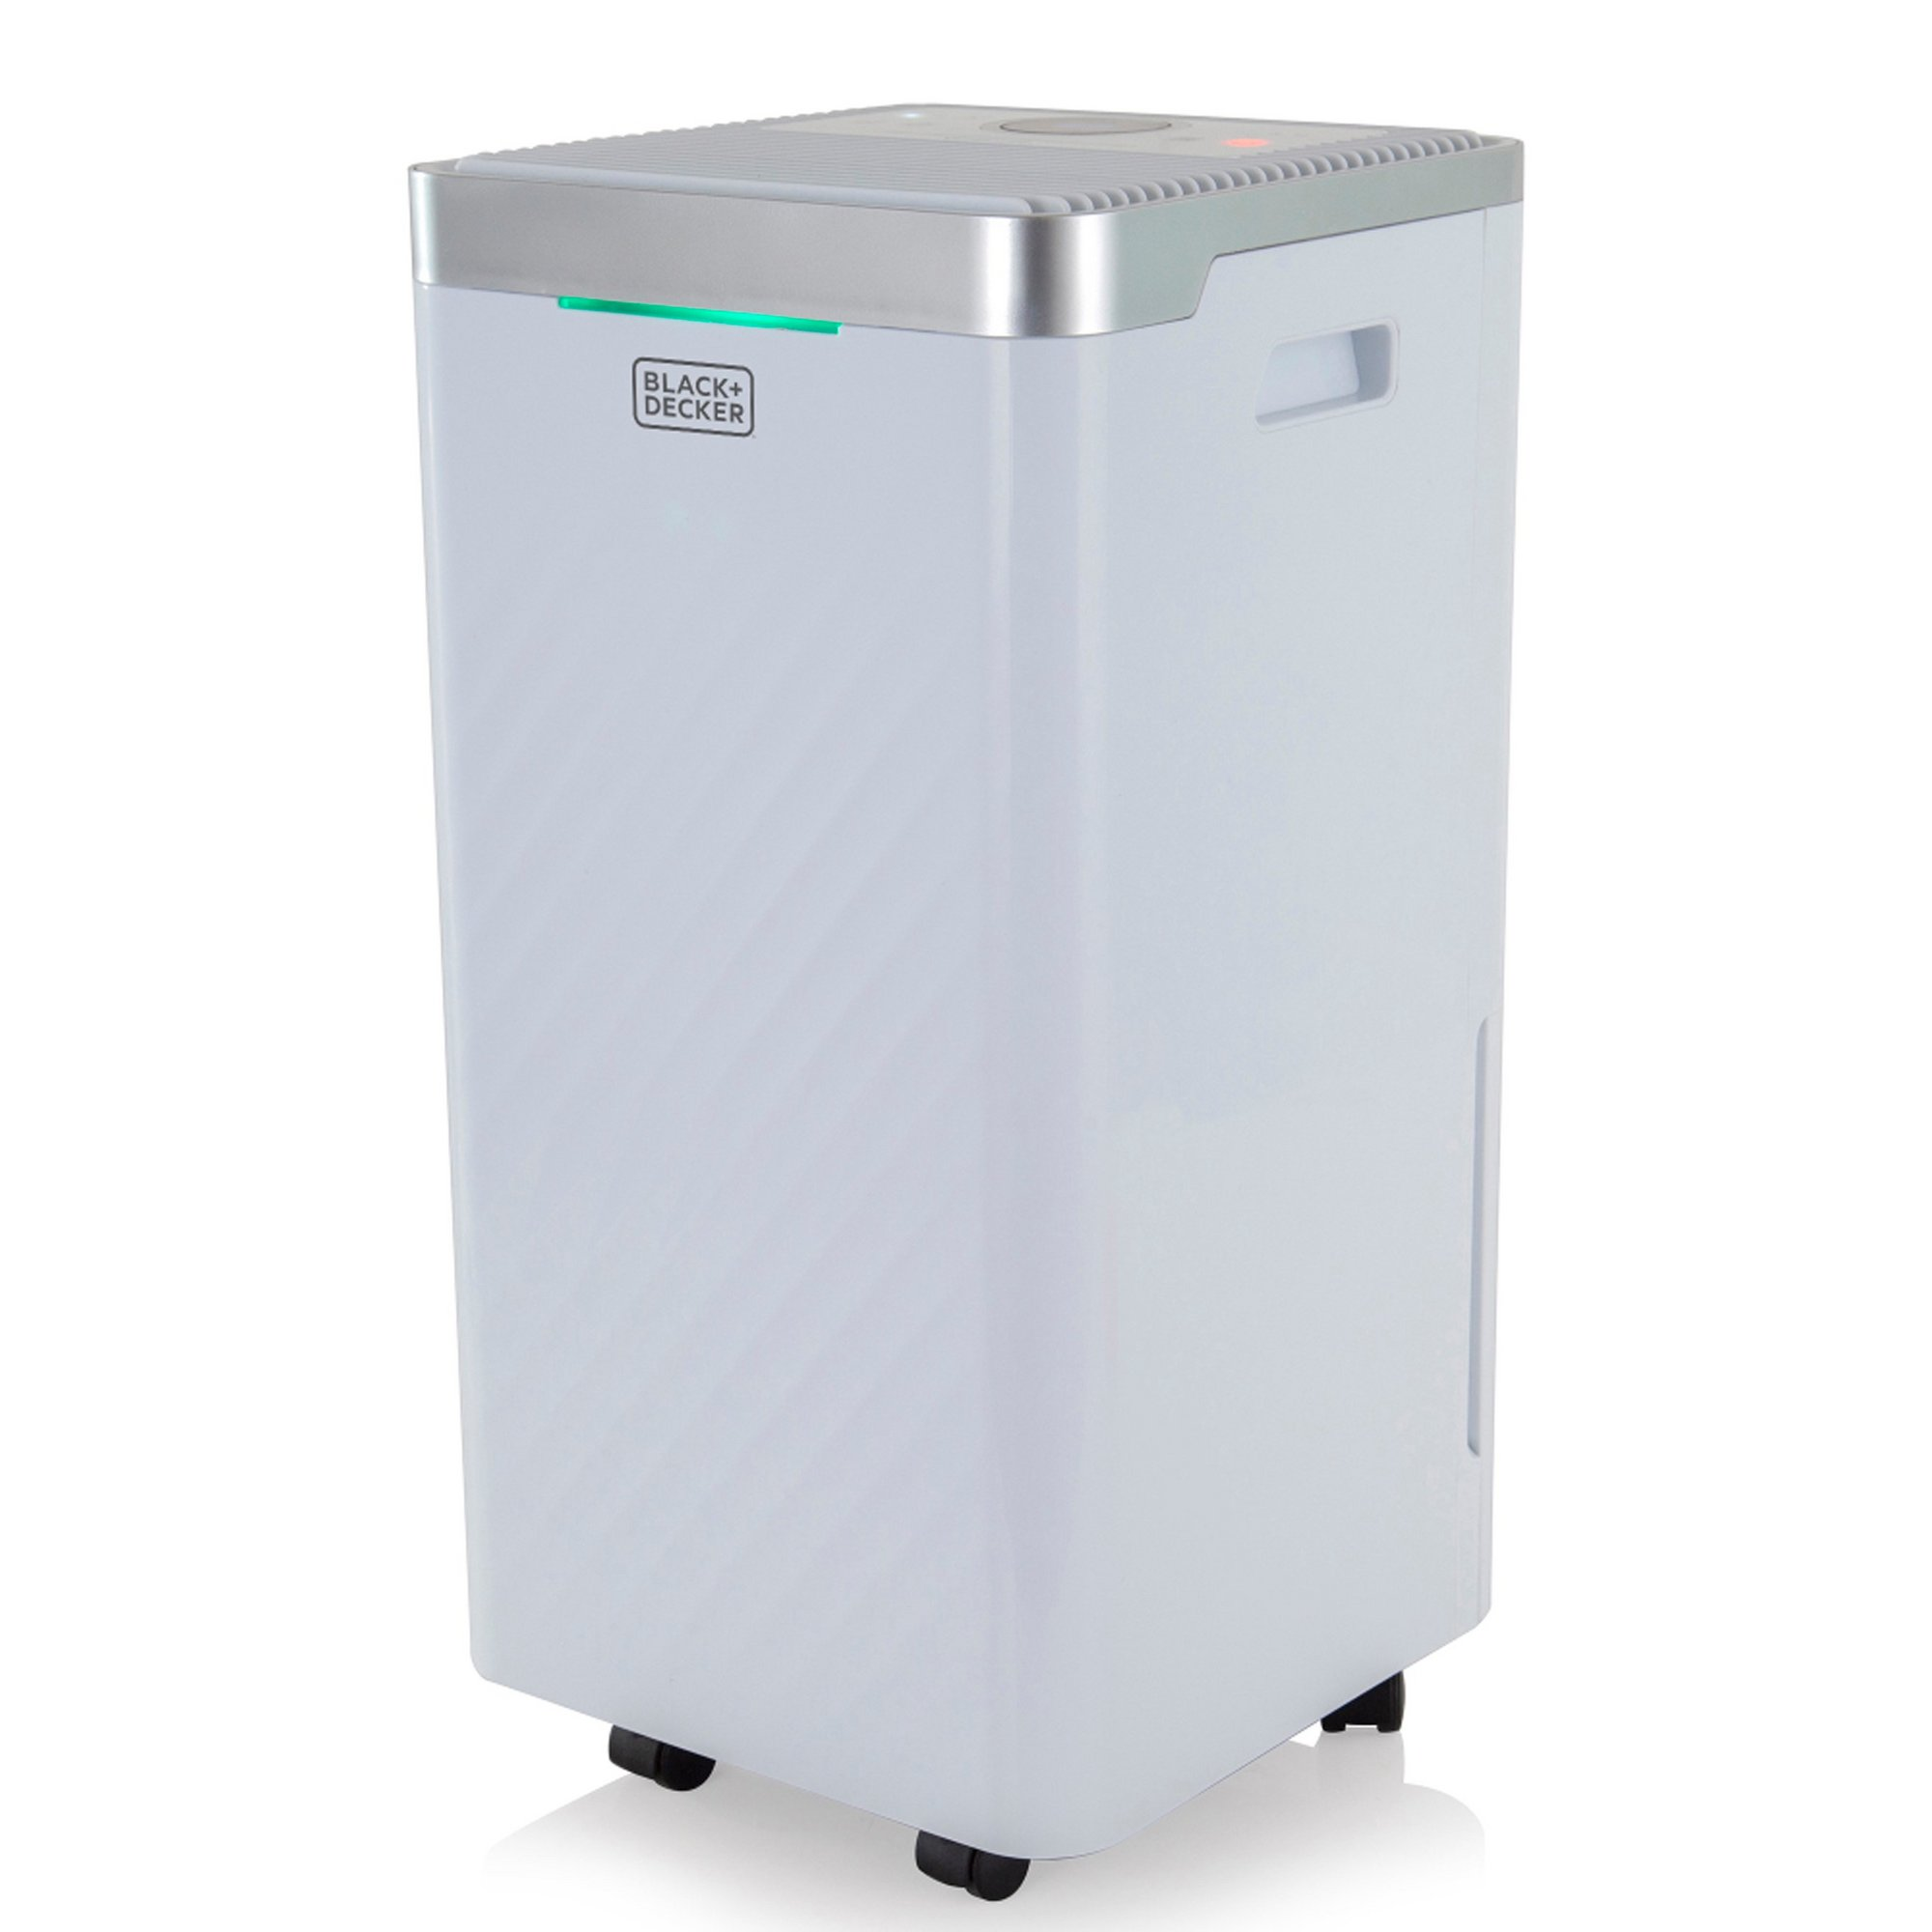 Image of Black and Decker 12 Litre Dehumidifier